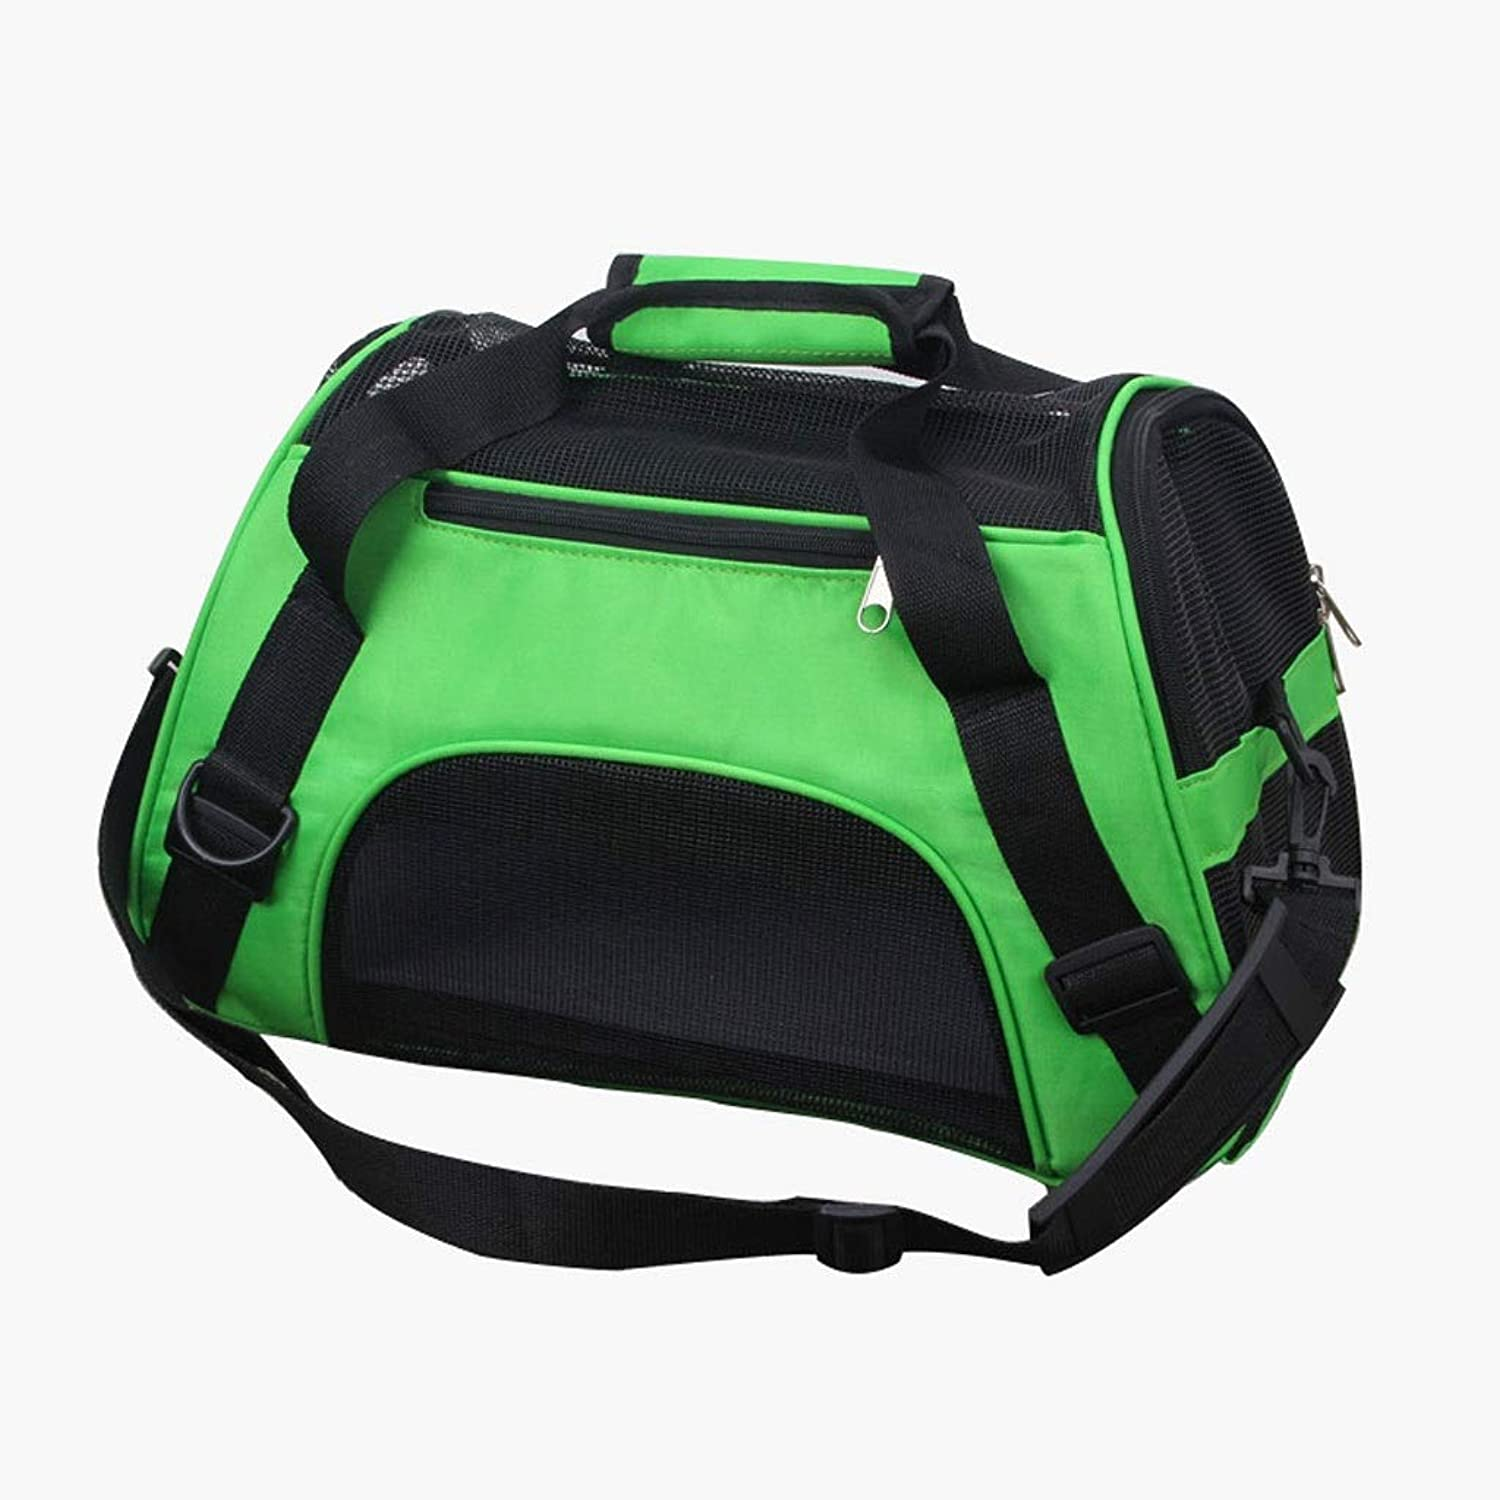 Pet Travel Carrier Pet Backpack Pet Outing Package Cat Bag Aviation pet Box Bag Outgoing Dog Bag Outdoor Travel Pet Supplies (color   Green, Size   M)